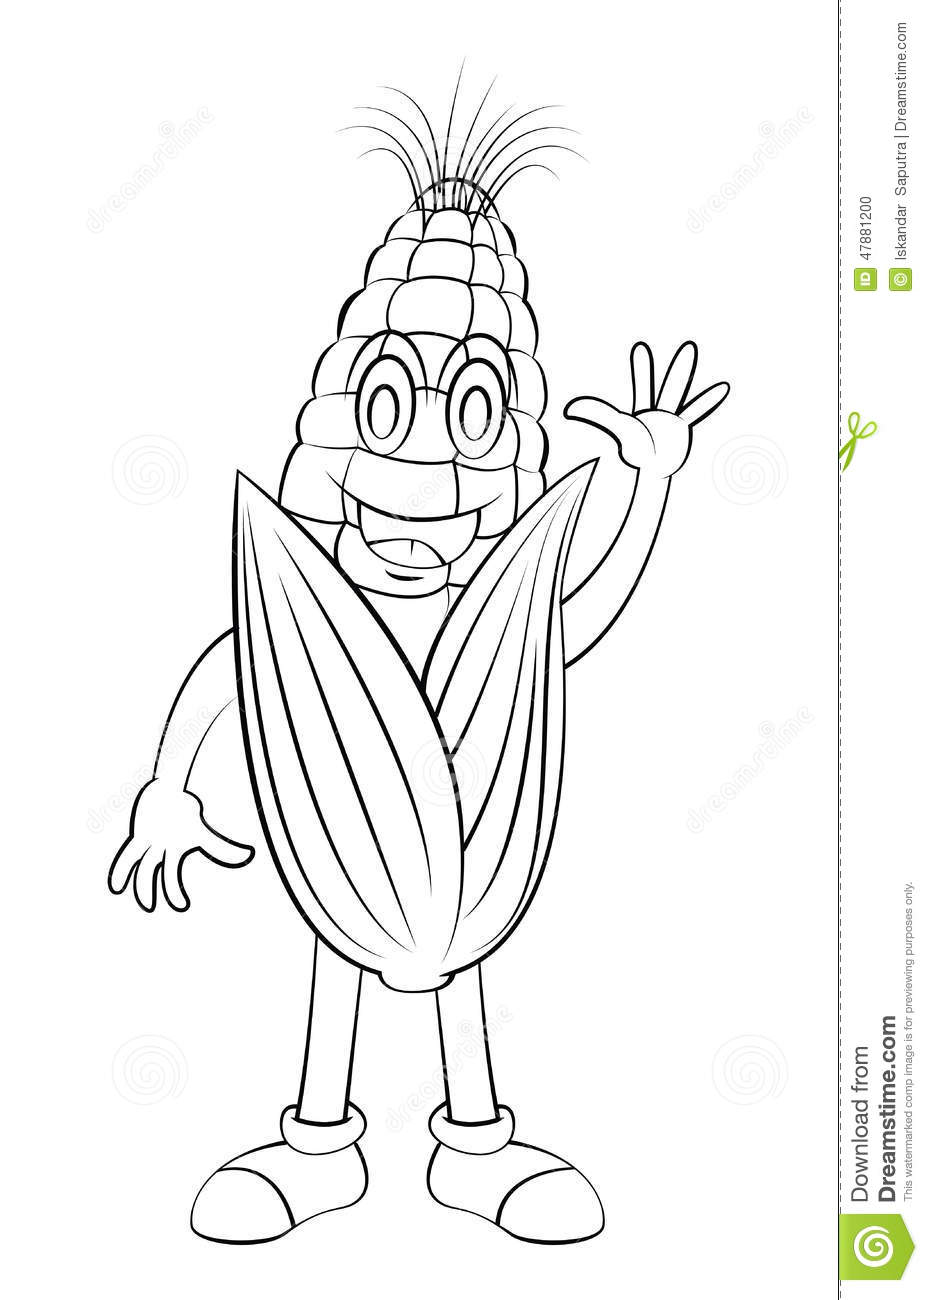 Animated Character Design In Illustrator : Corn cartoon character stock vector image of white